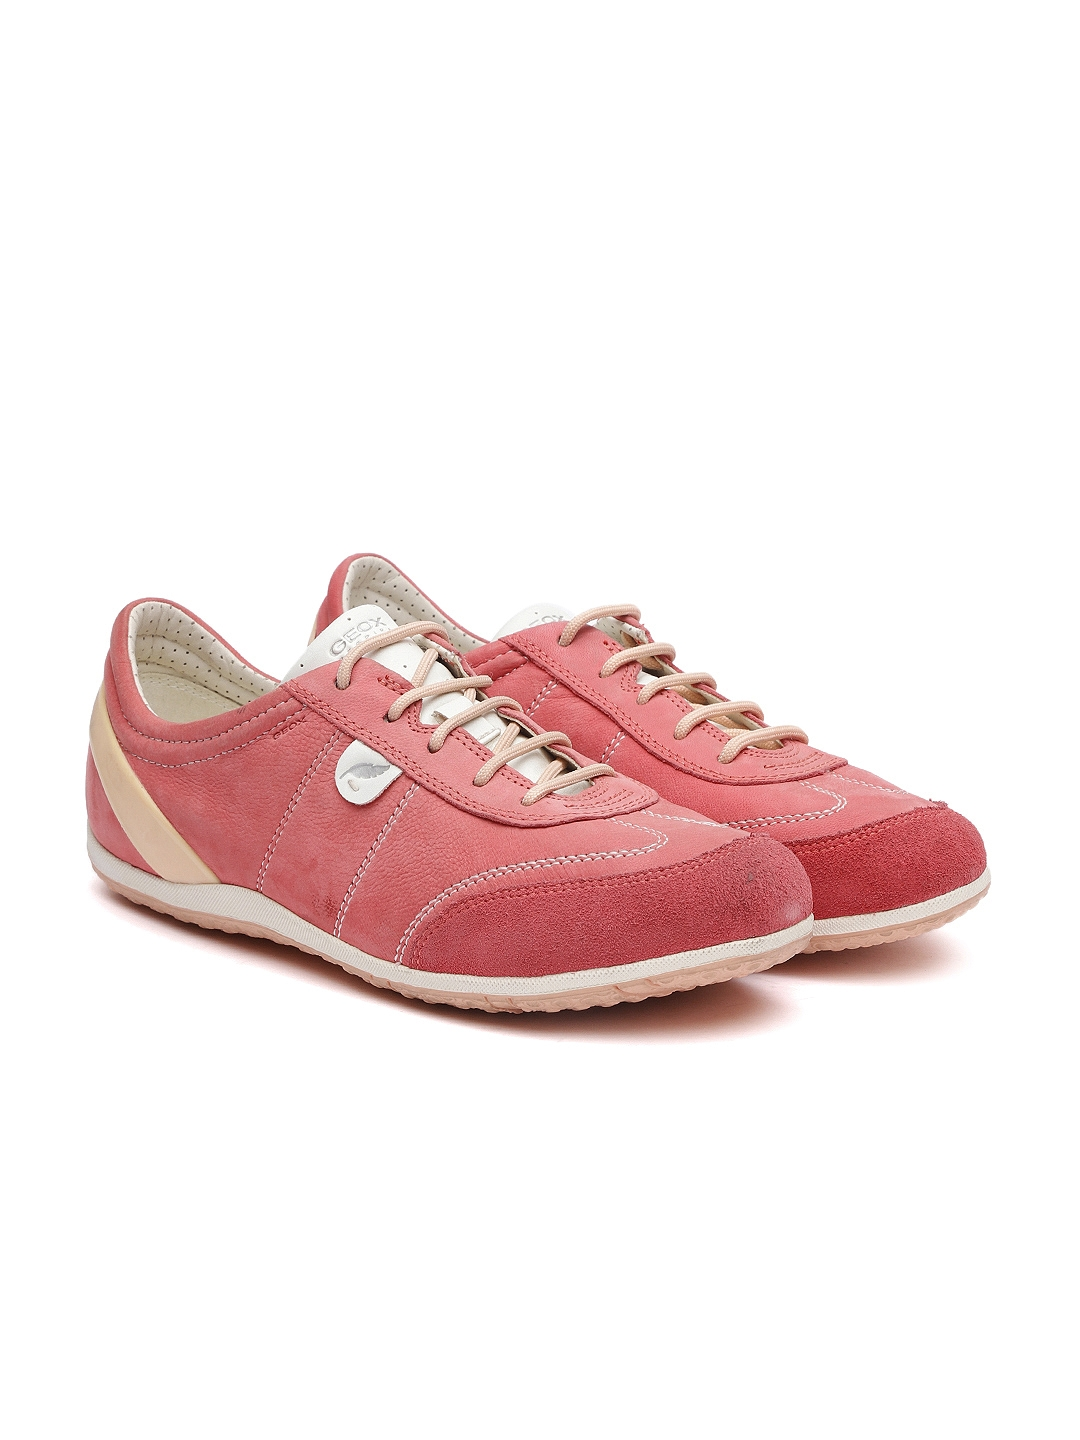 86b6891bcaa Buy Geox Women Coral Pink Leather Sneakers - Casual Shoes for Women ...